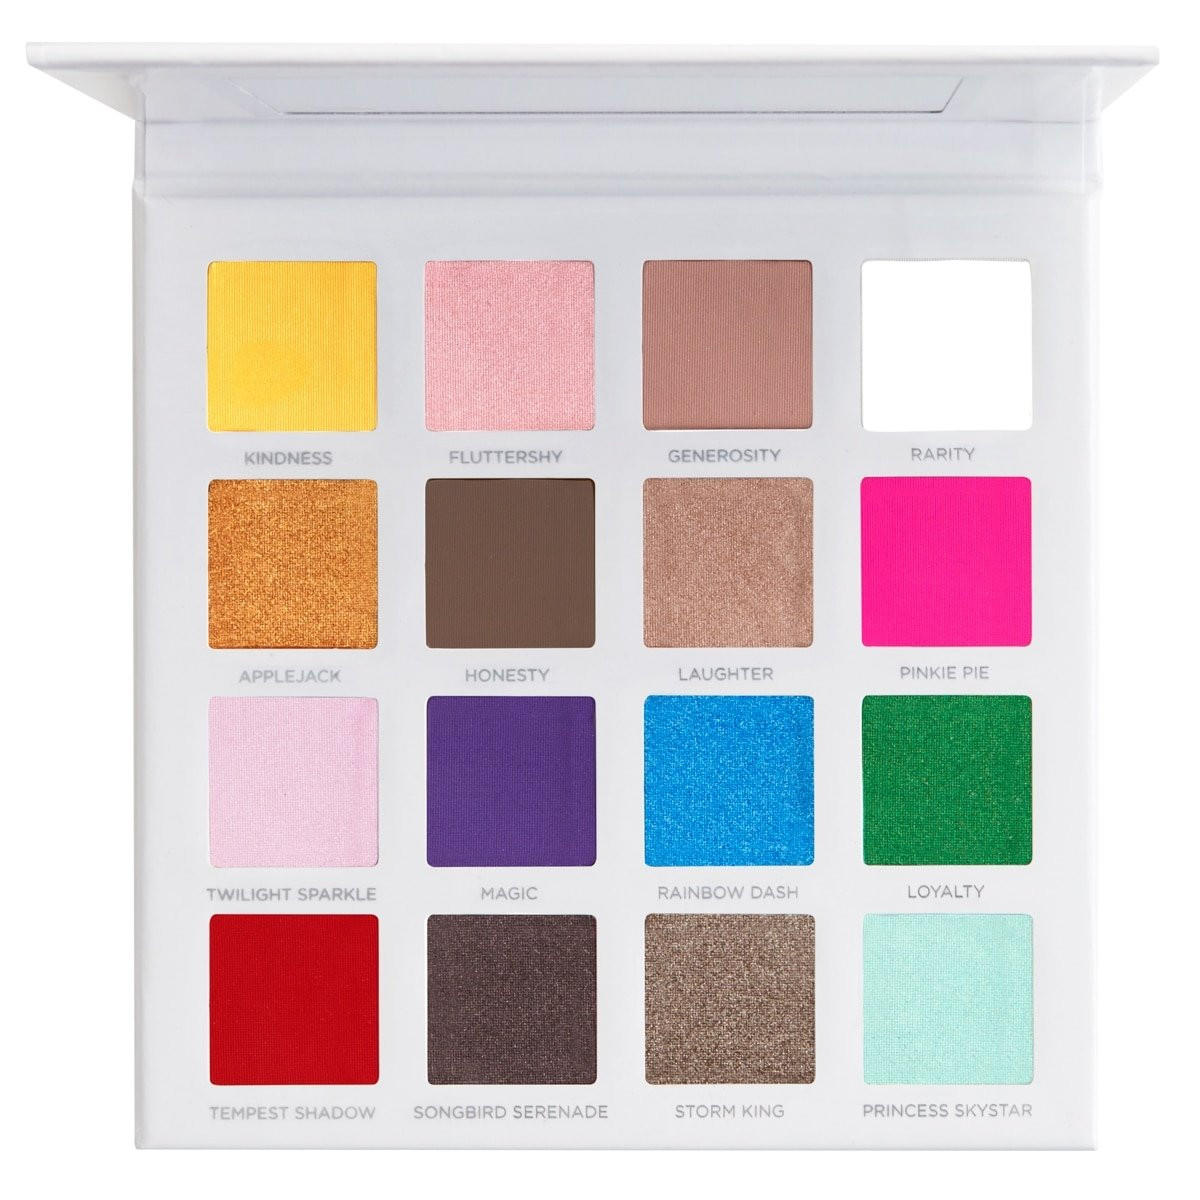 PUR My Little Pony: The Movie Eyeshadow Palette